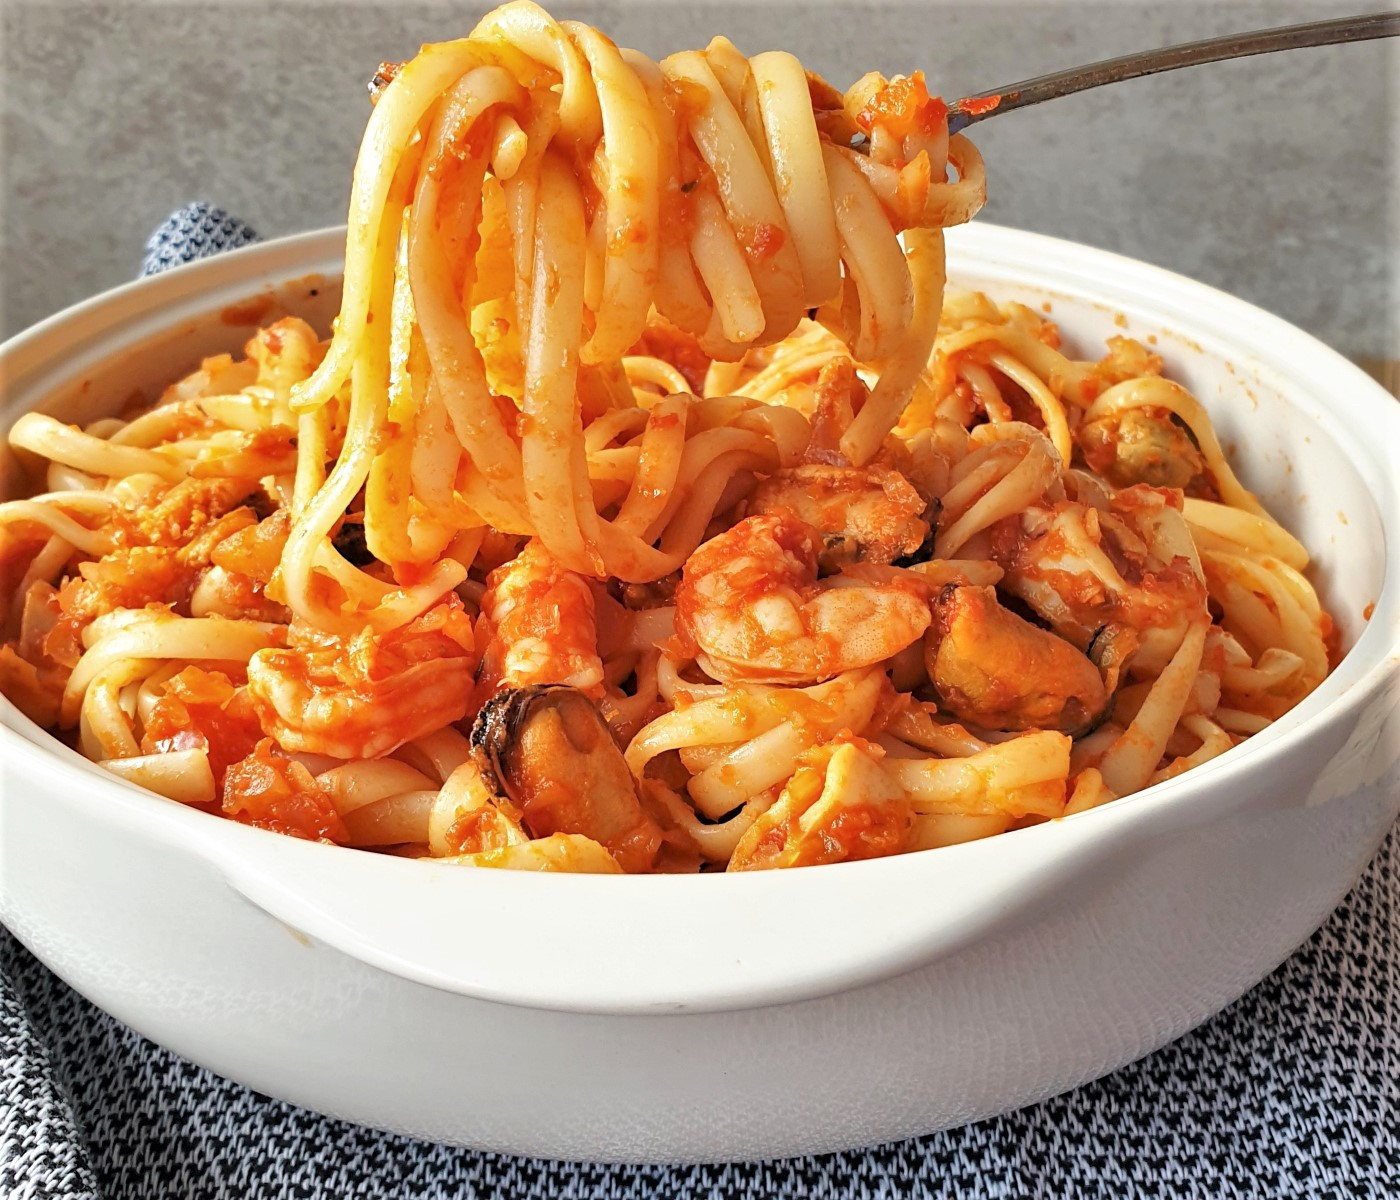 A forkful of linguine over a bowl of pasta pescatone.